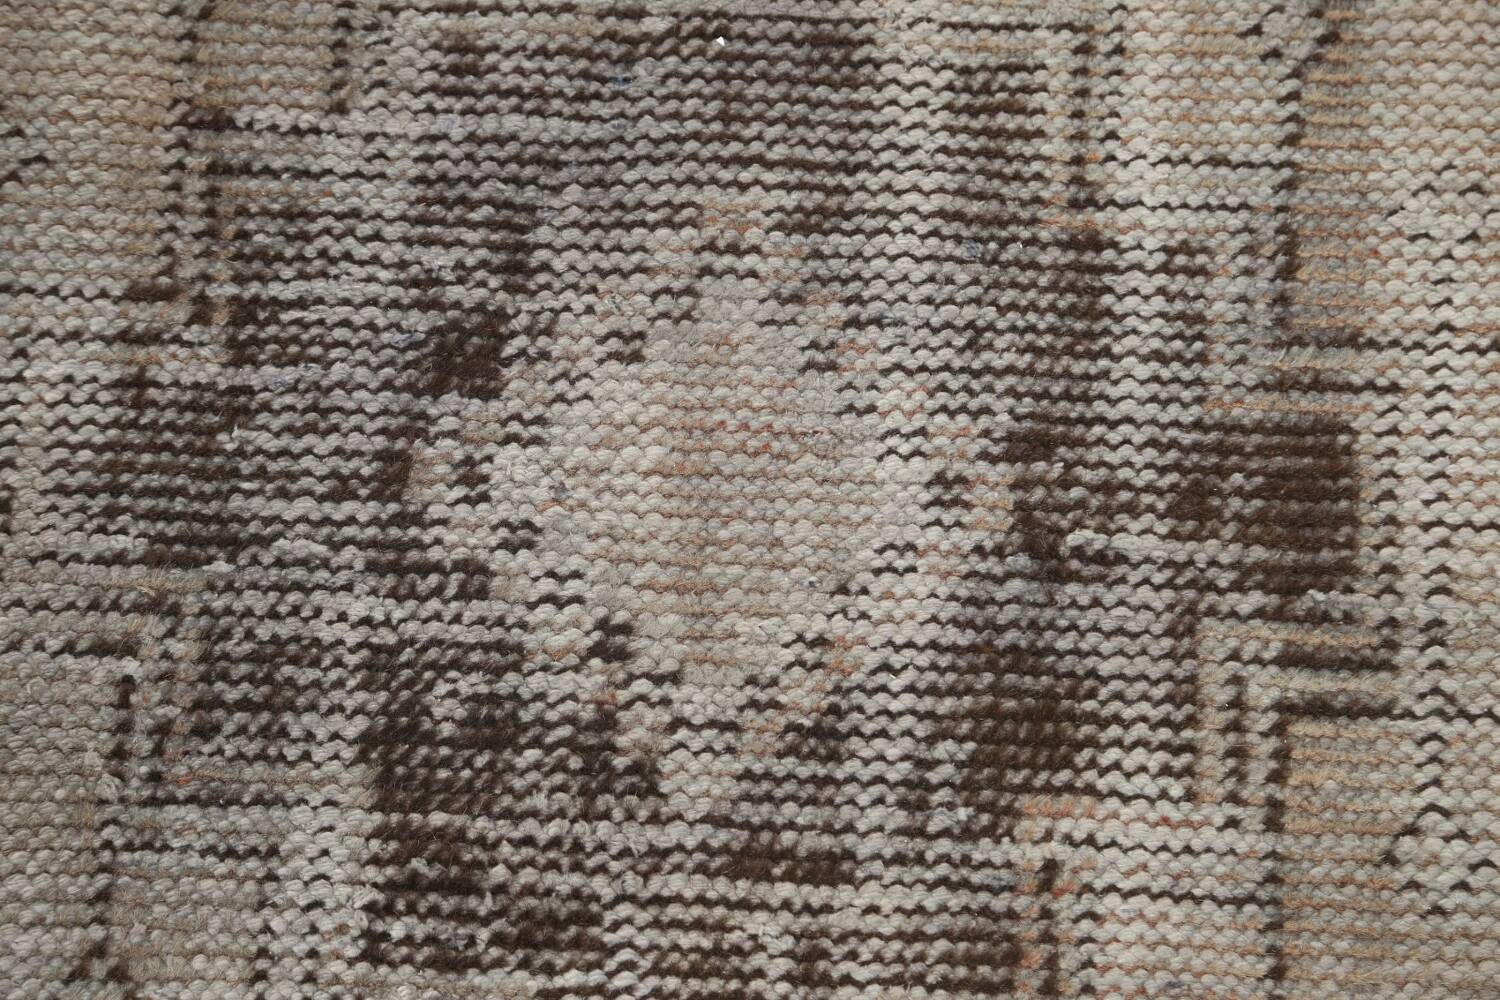 Antique Distressed Balouch Persian Area Rug 4x7 image 9